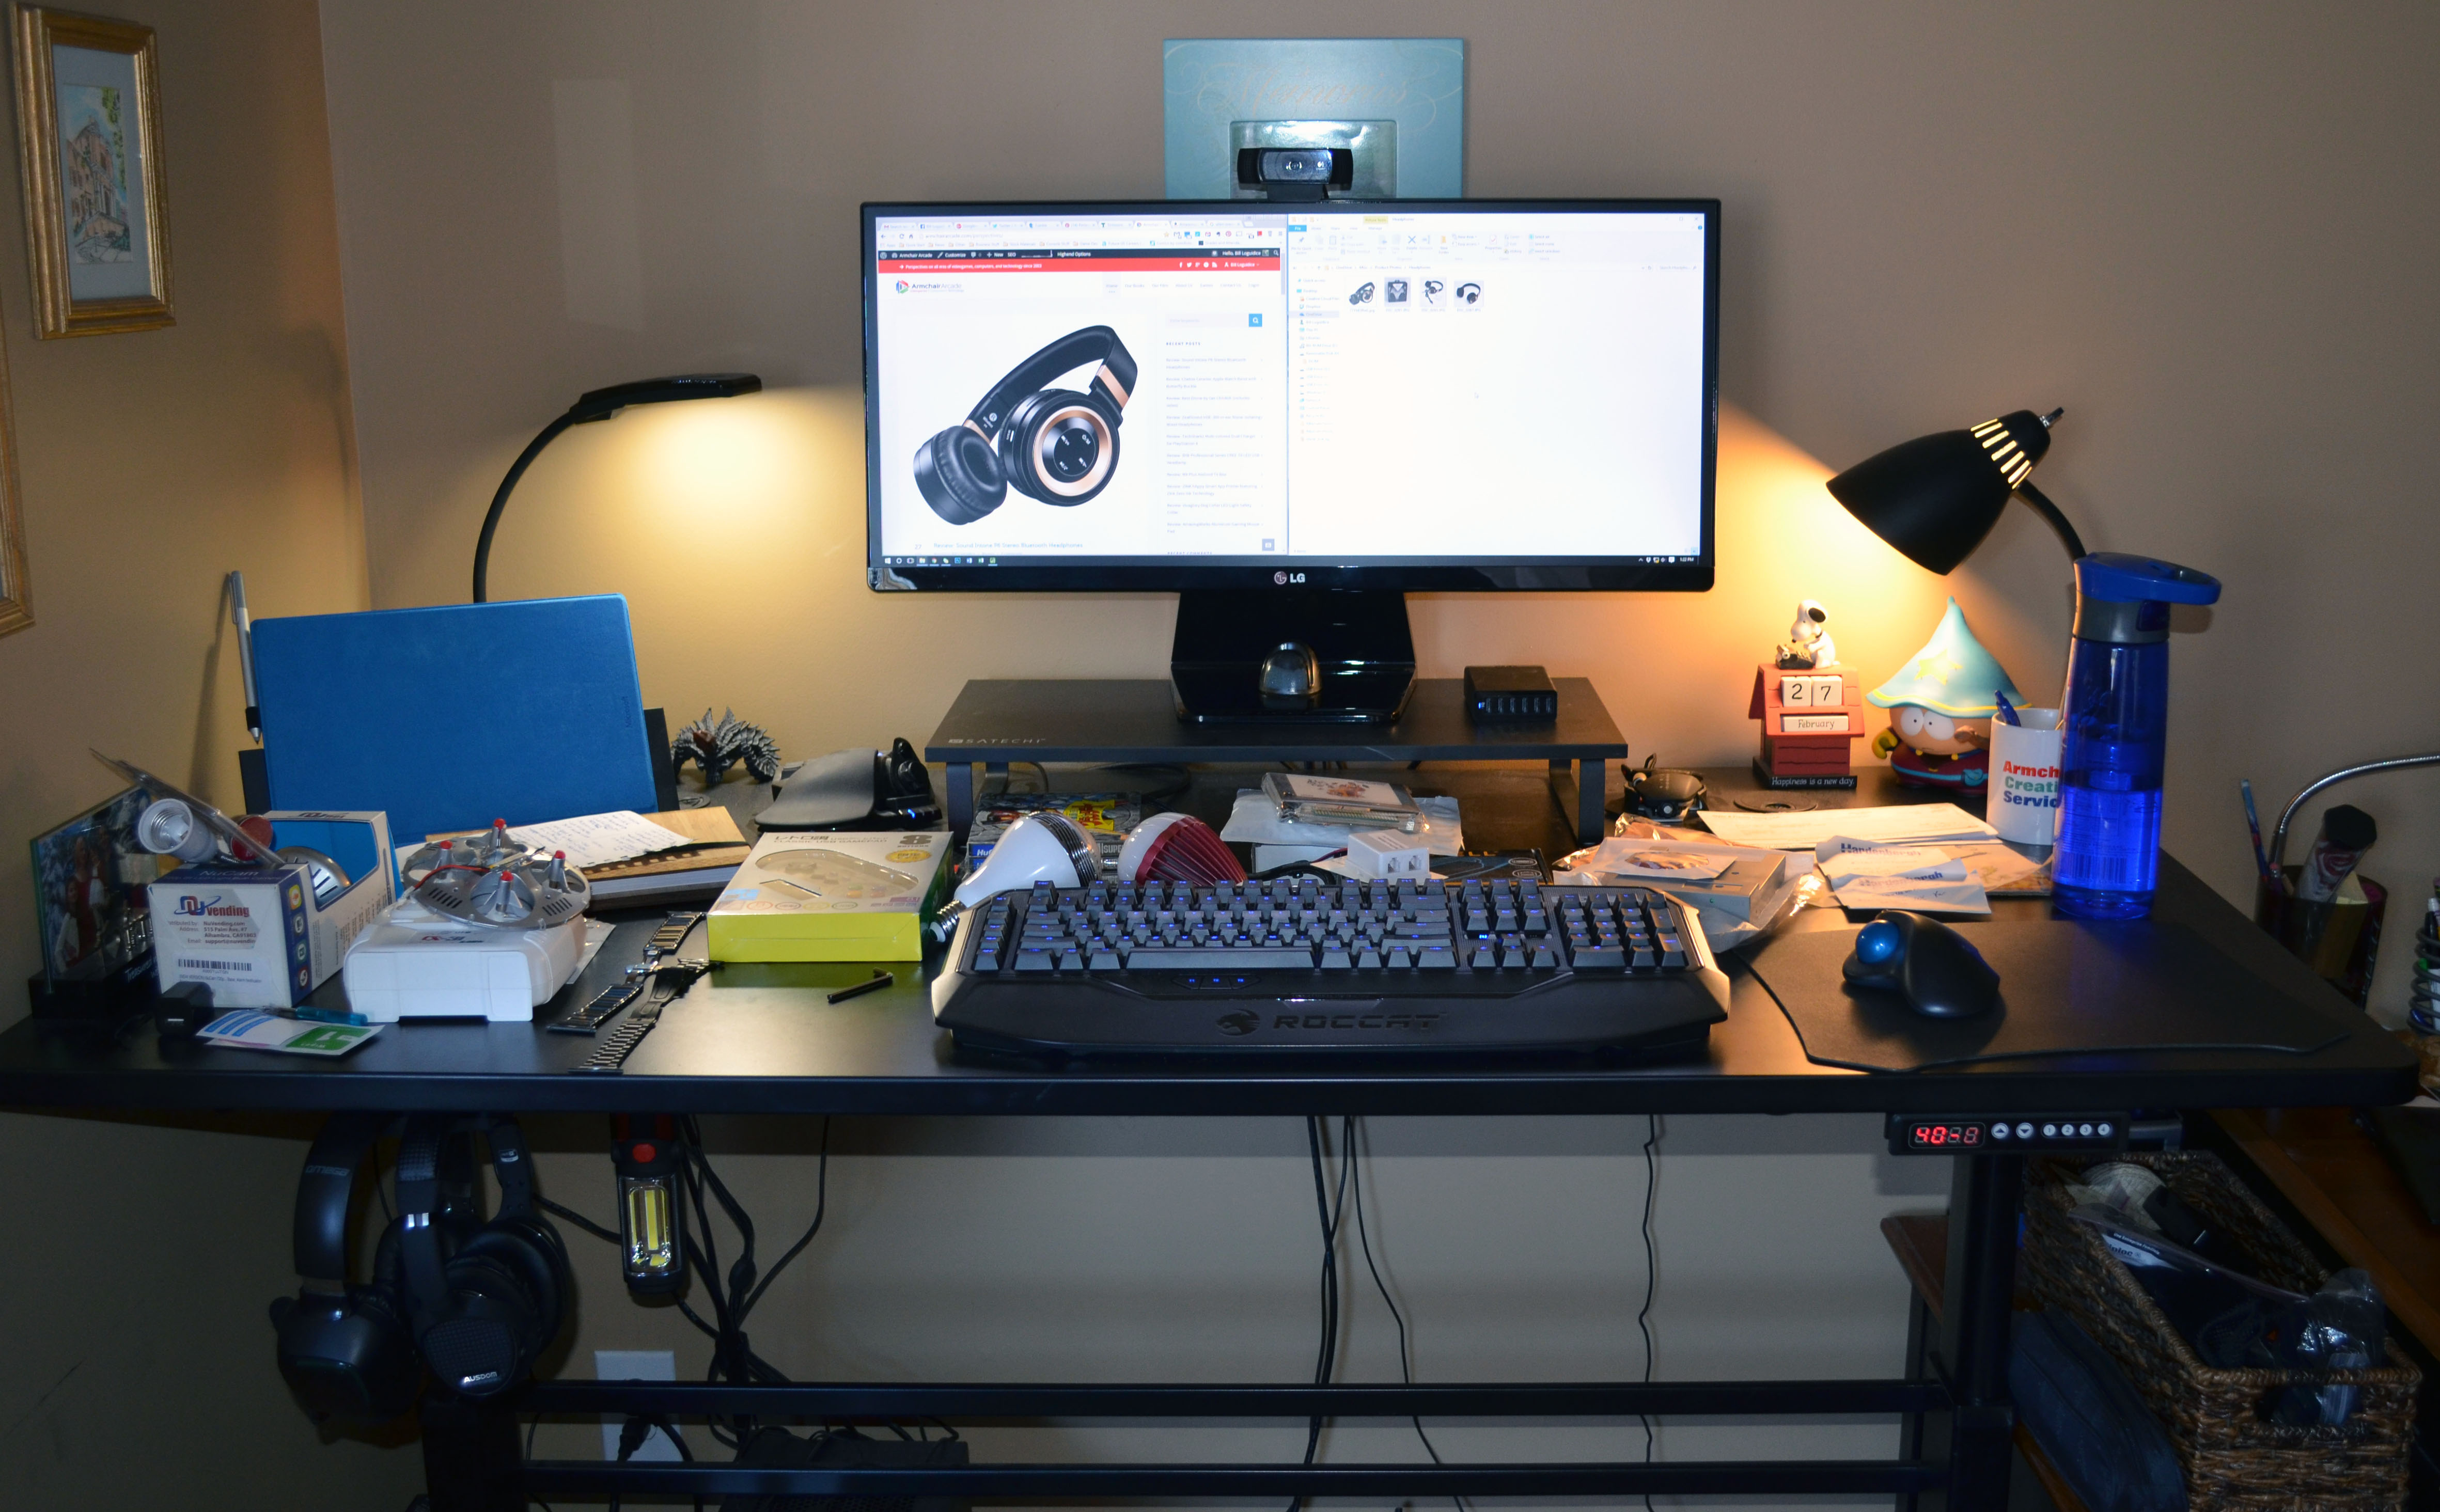 My mess of a standing desk, but at least my monitor is now an ideal height.